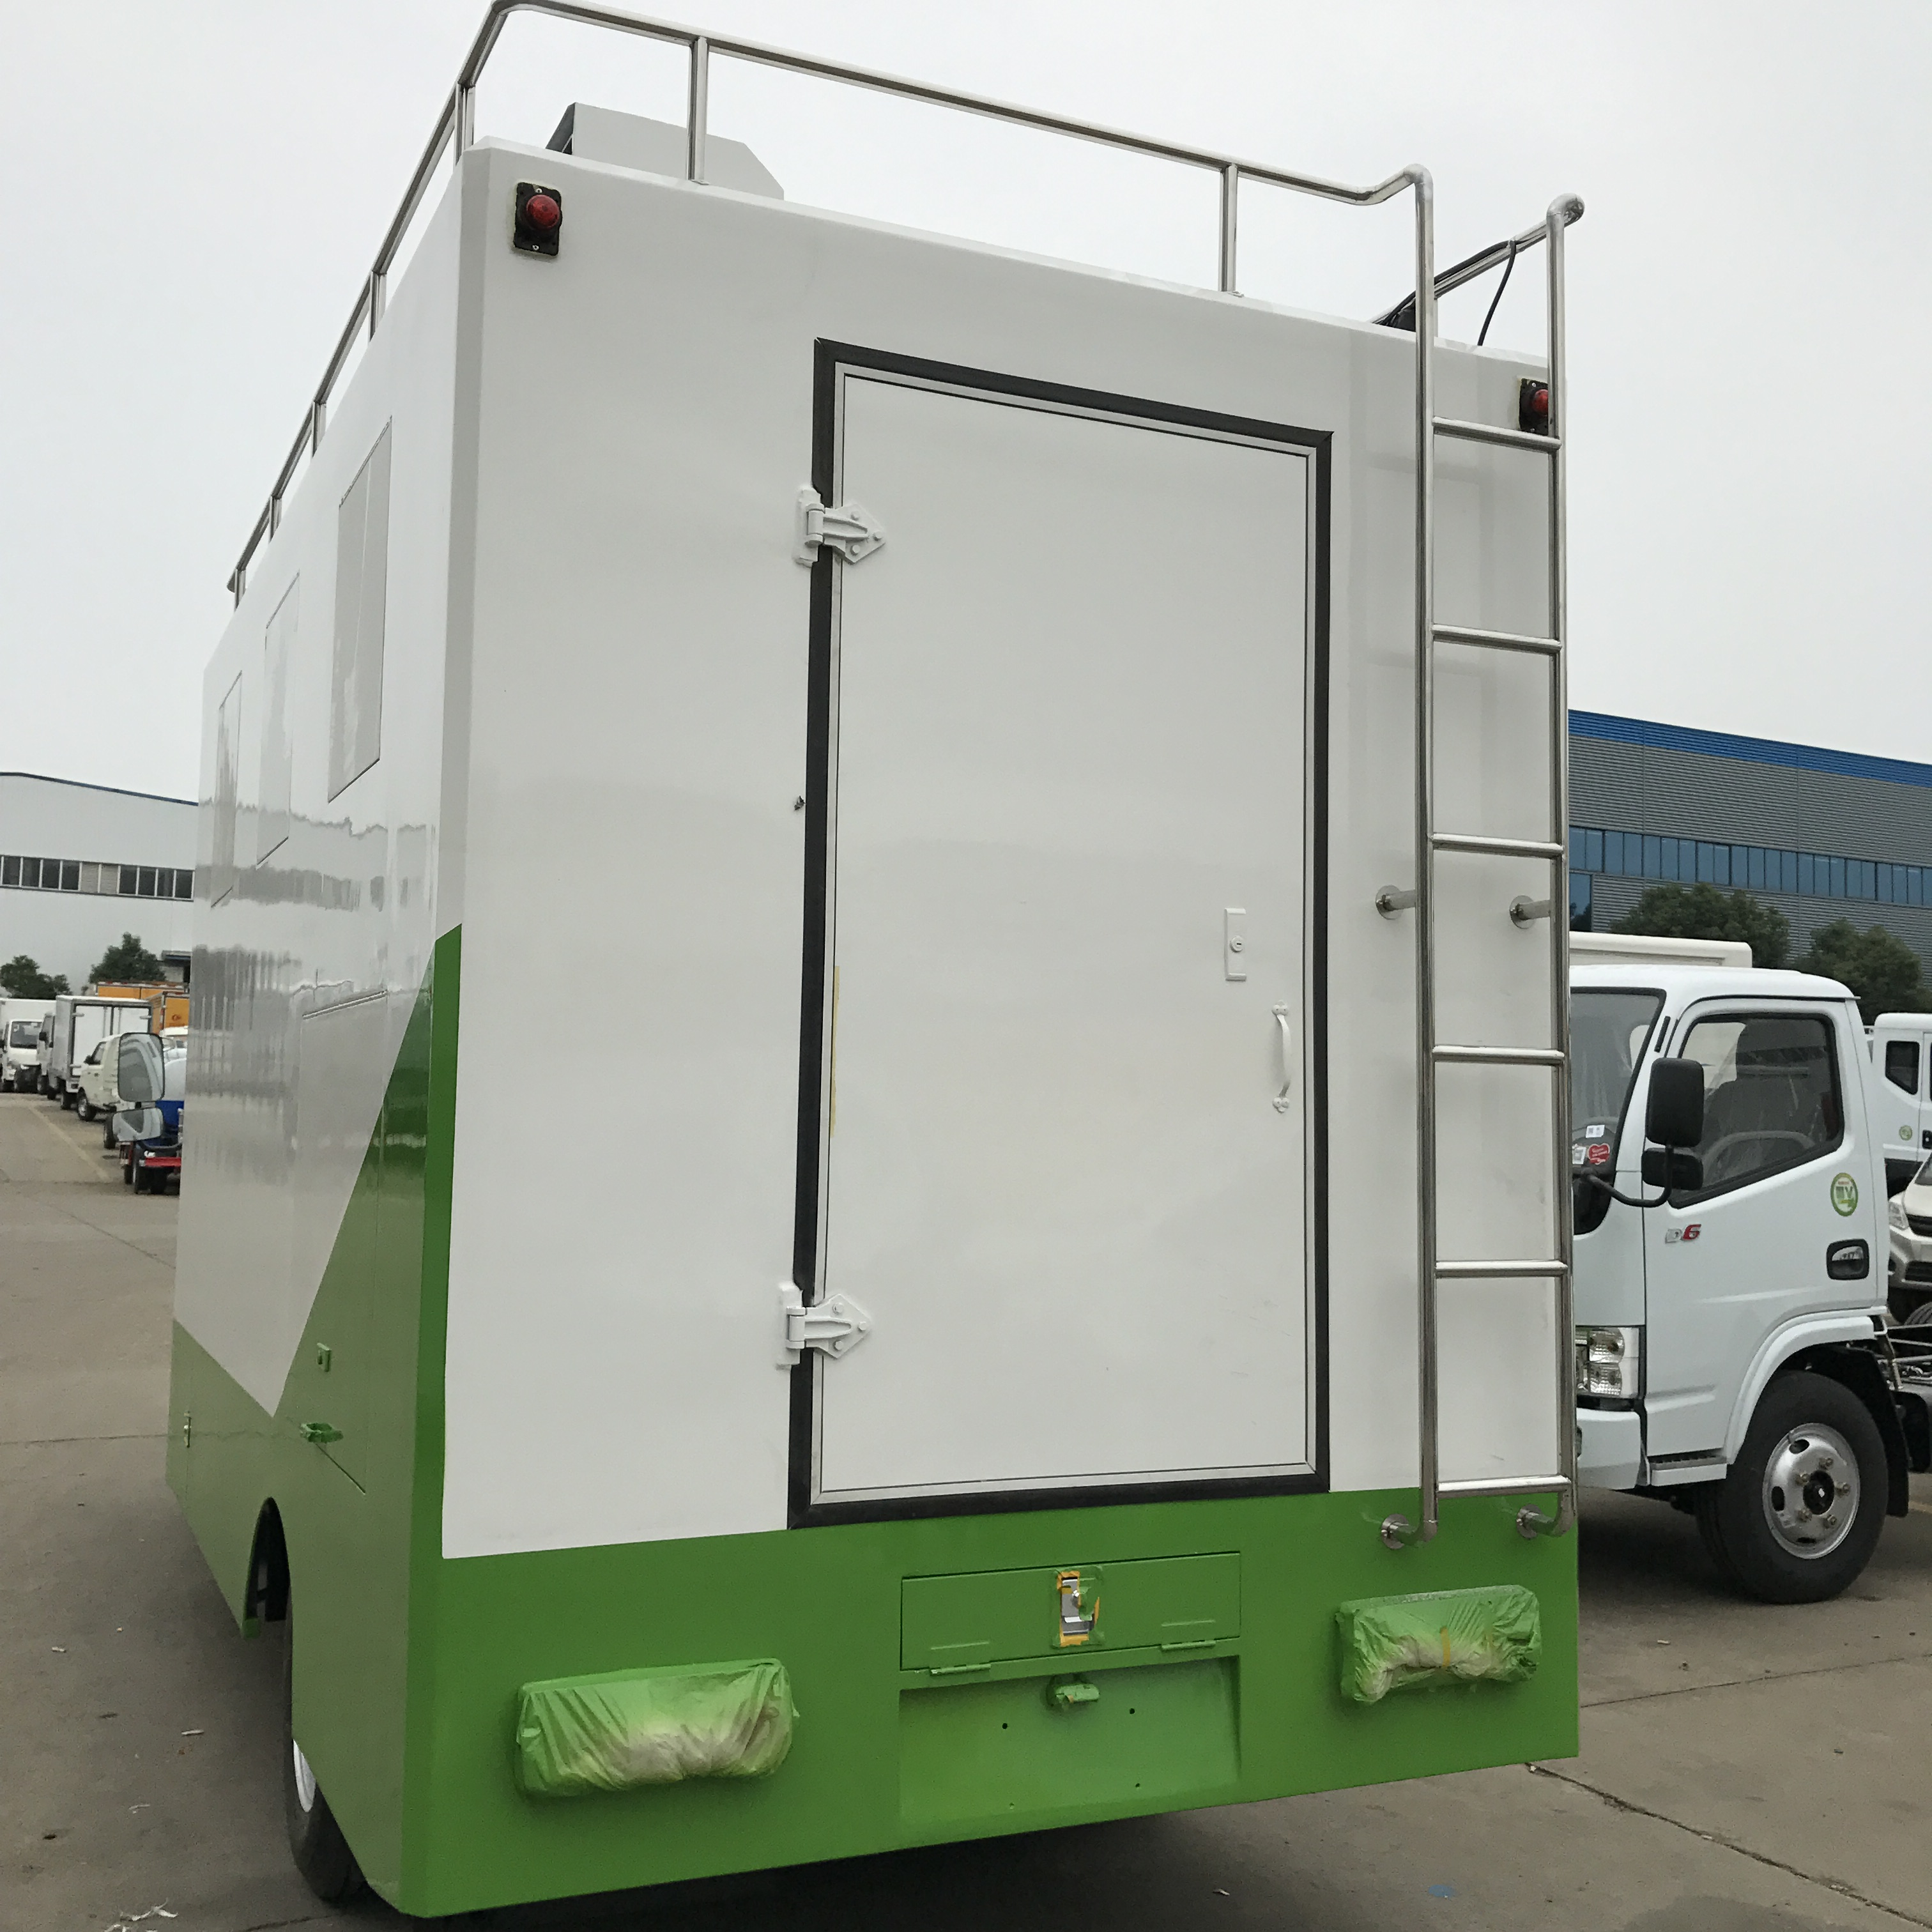 Dongfeng 3300 Mm Wheelbase Box Van with Kitchen Equipment Food Truck for Sale